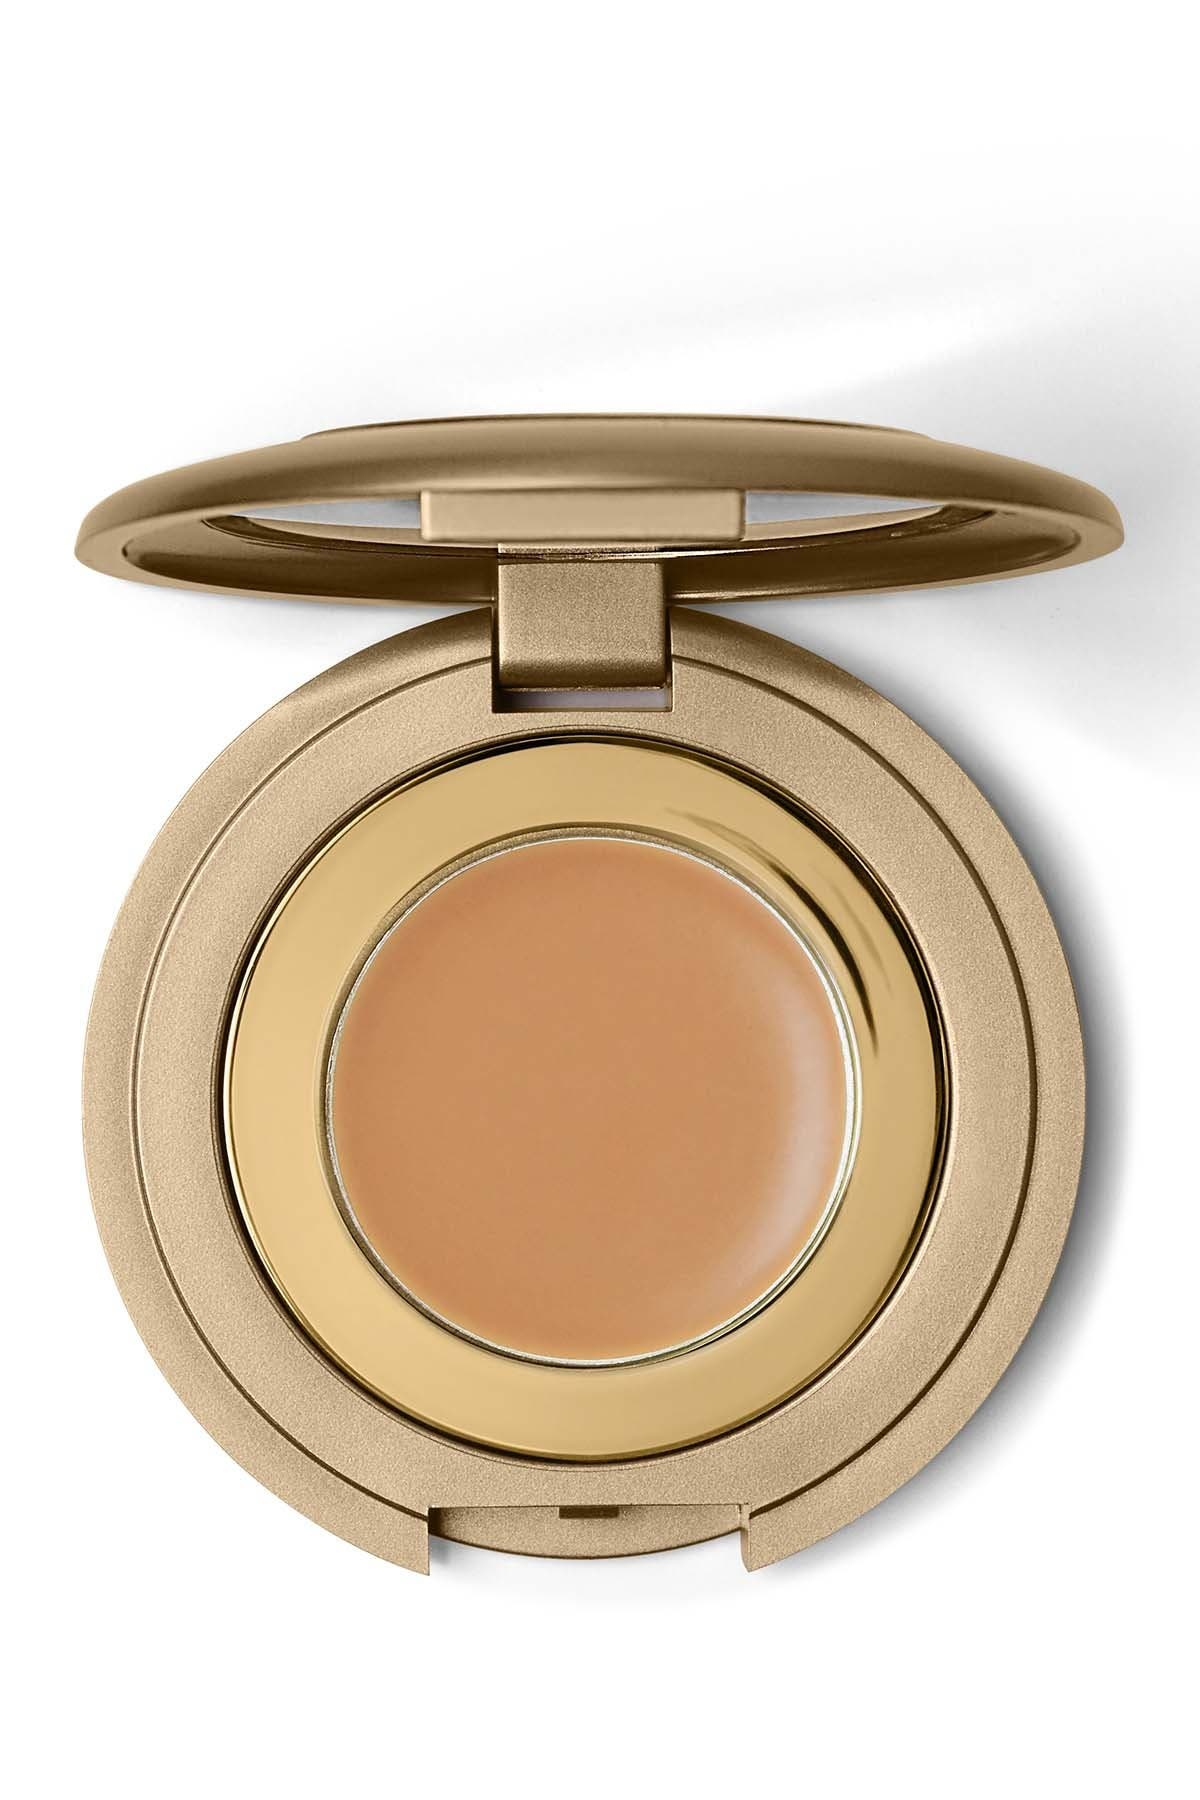 Image of Stila Stay All Day Concealer Refill - Tone 6